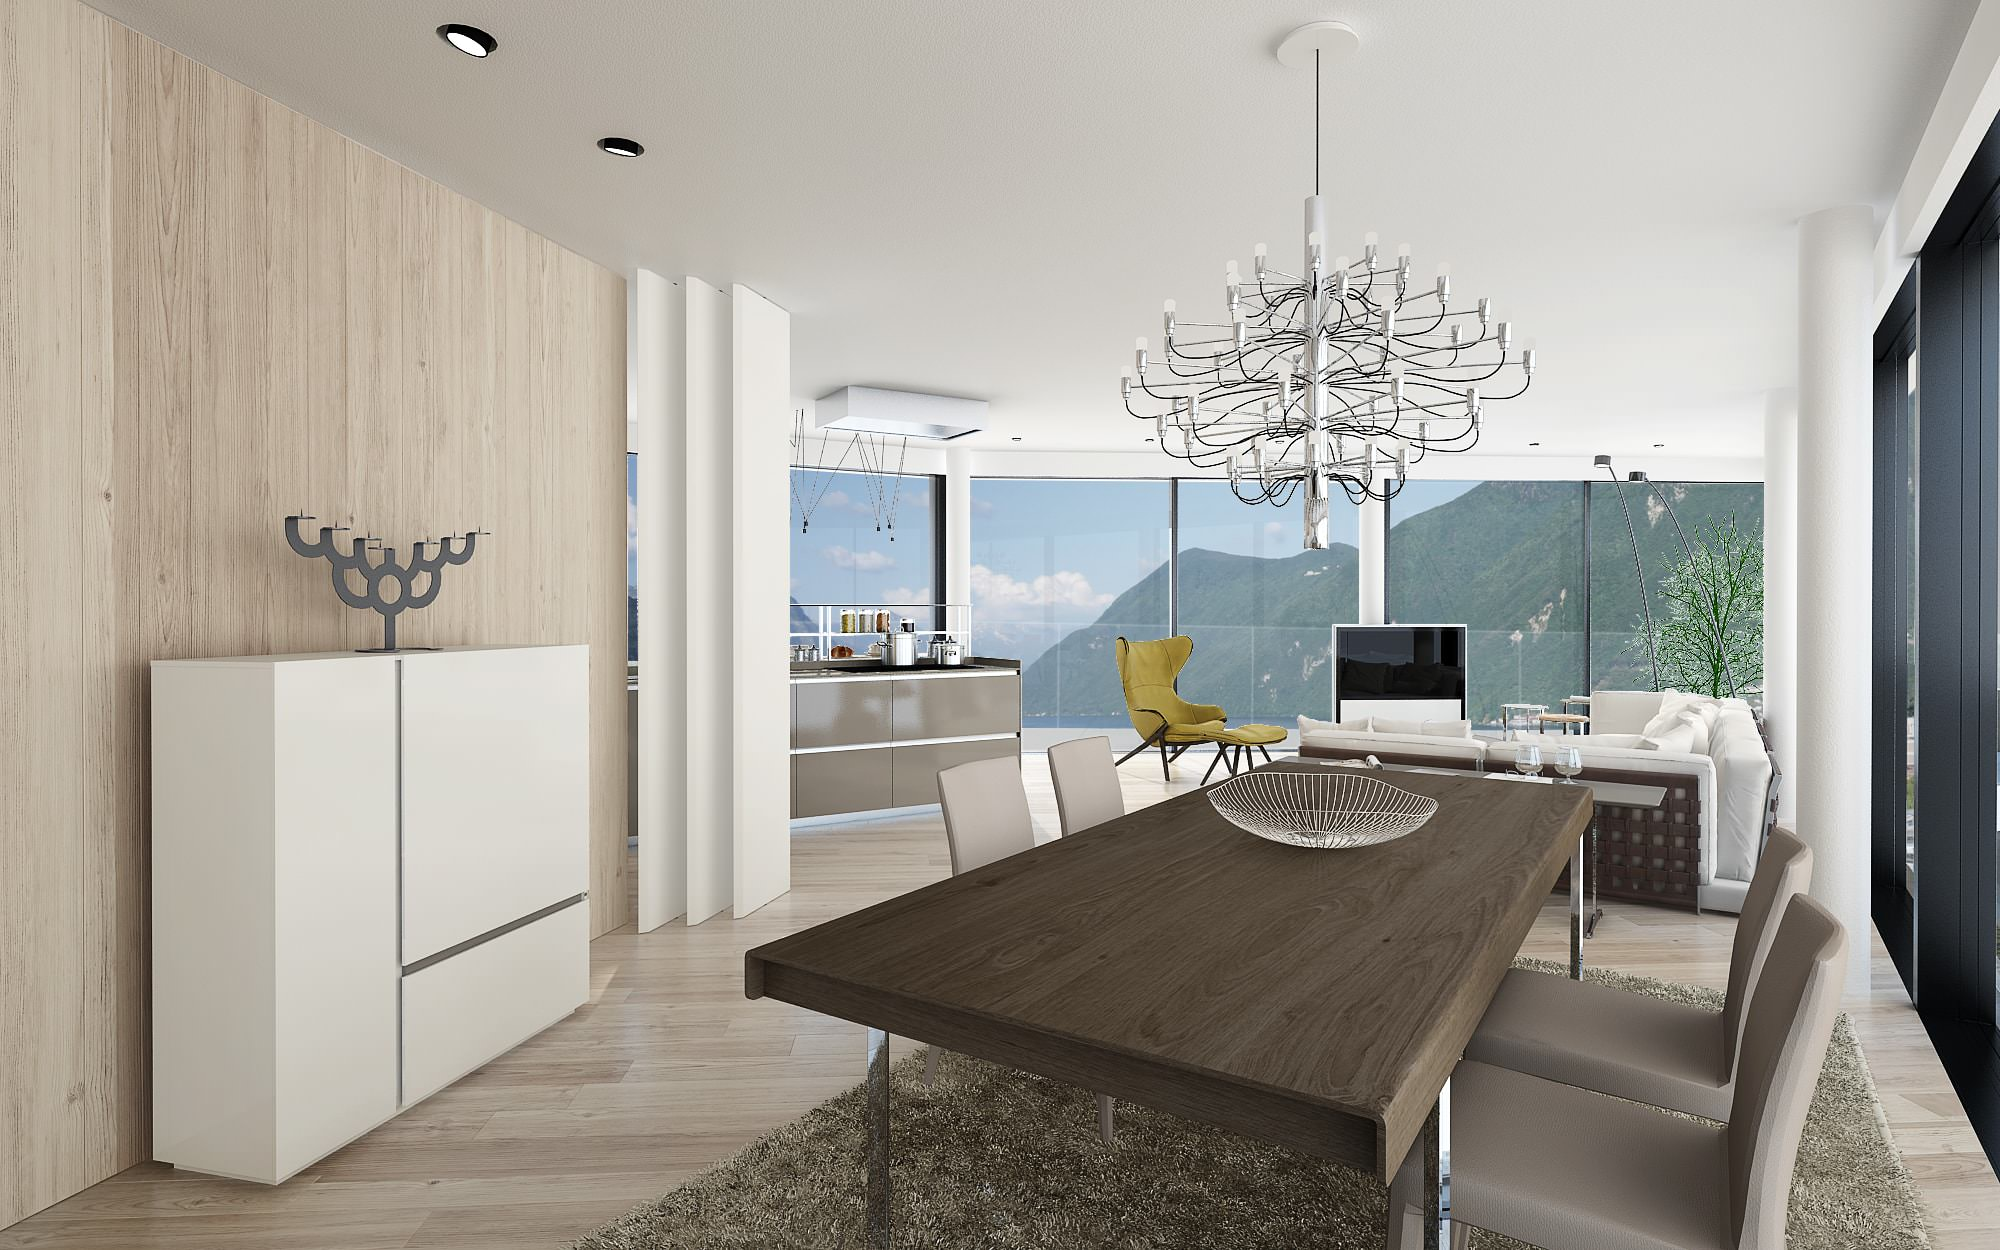 Table penthouse design Lugano Ticino Switzerland